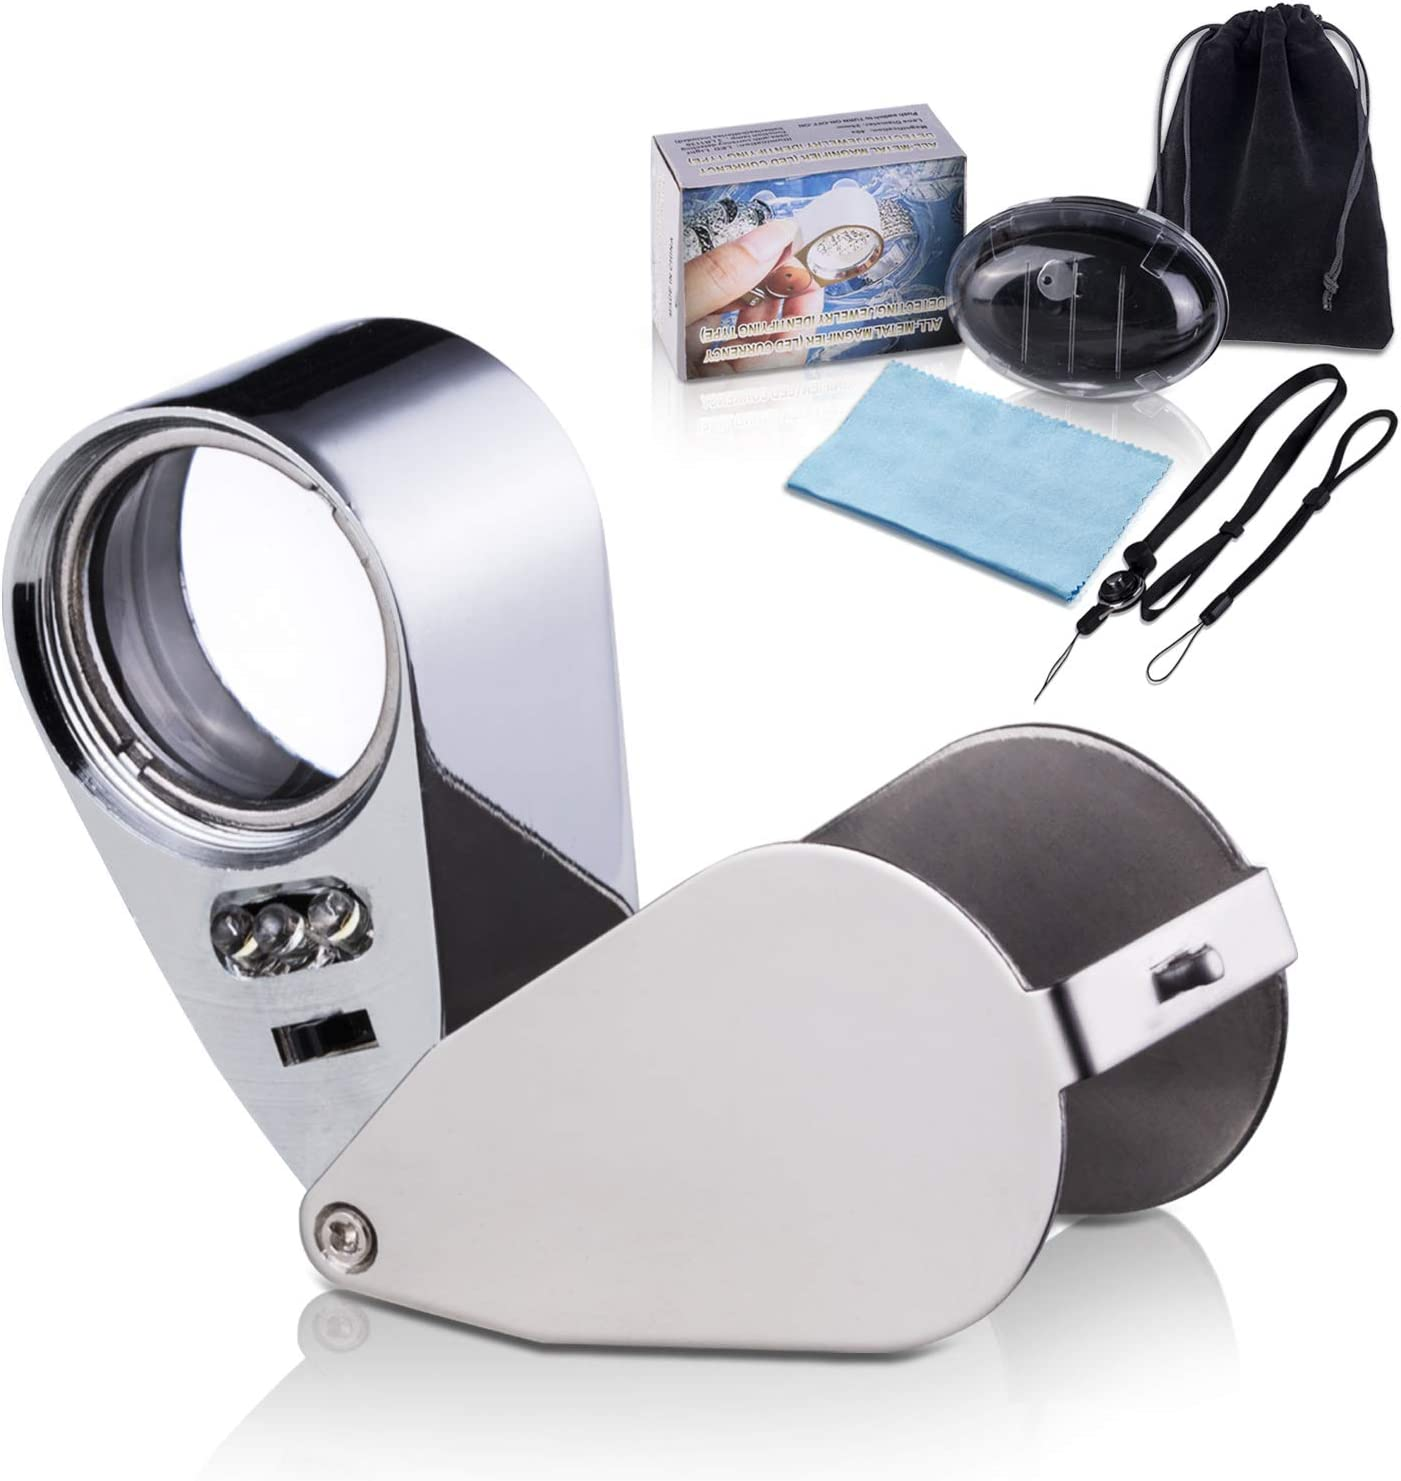 Wanapure 40× Metal Jewelry Loop Limited time for free shipping Eye Loupe Max 51% OFF Jewelers Magnifier